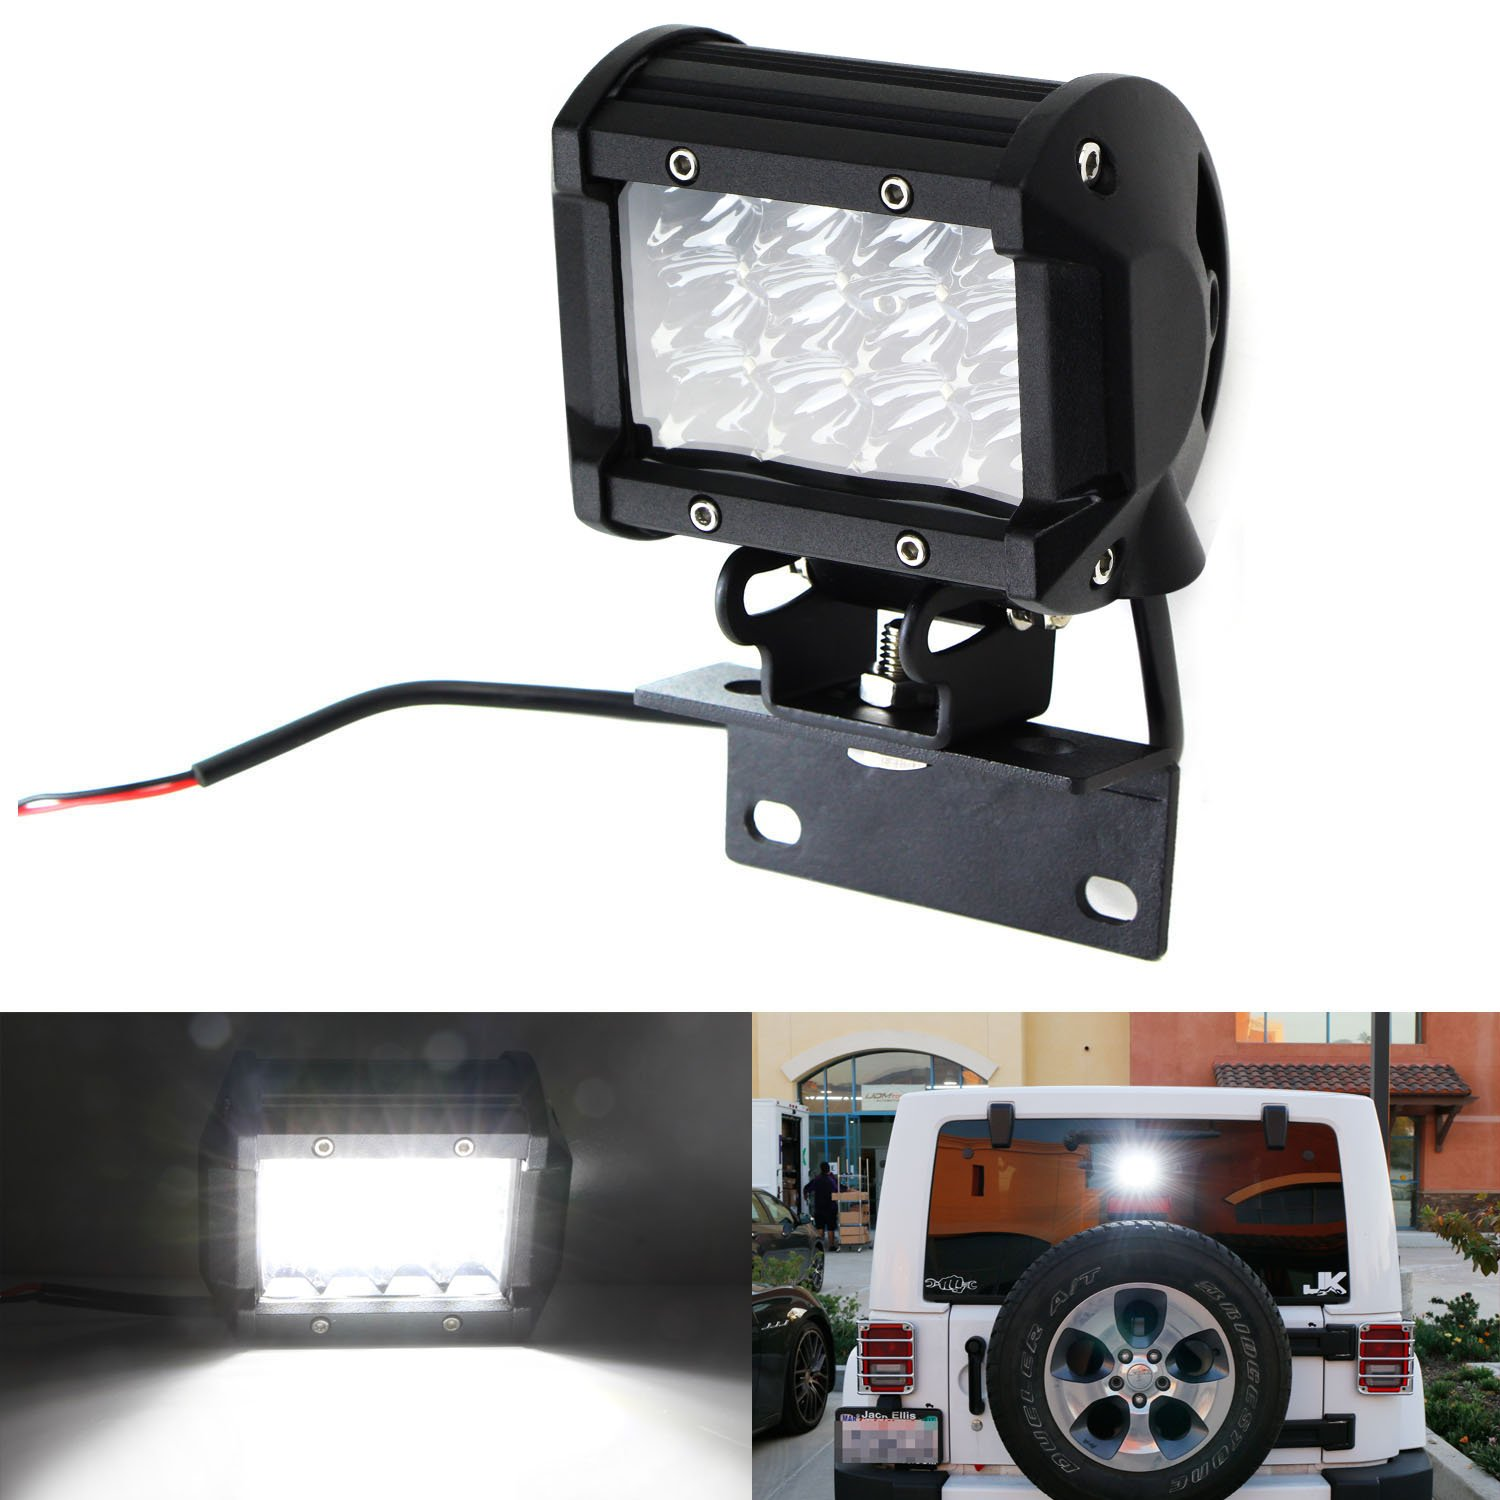 iJDMTOY Over 3rd Brakelamp 36W LED Pod Light For 2007-2017 Jeep Wrangler JK w/Brake Light Mounting Bracket, Use as Backup Reverse or Rear Driving Lamp iJDMTOY Auto Accessories 12 x 3W LED Driving Auxiliary Lamp